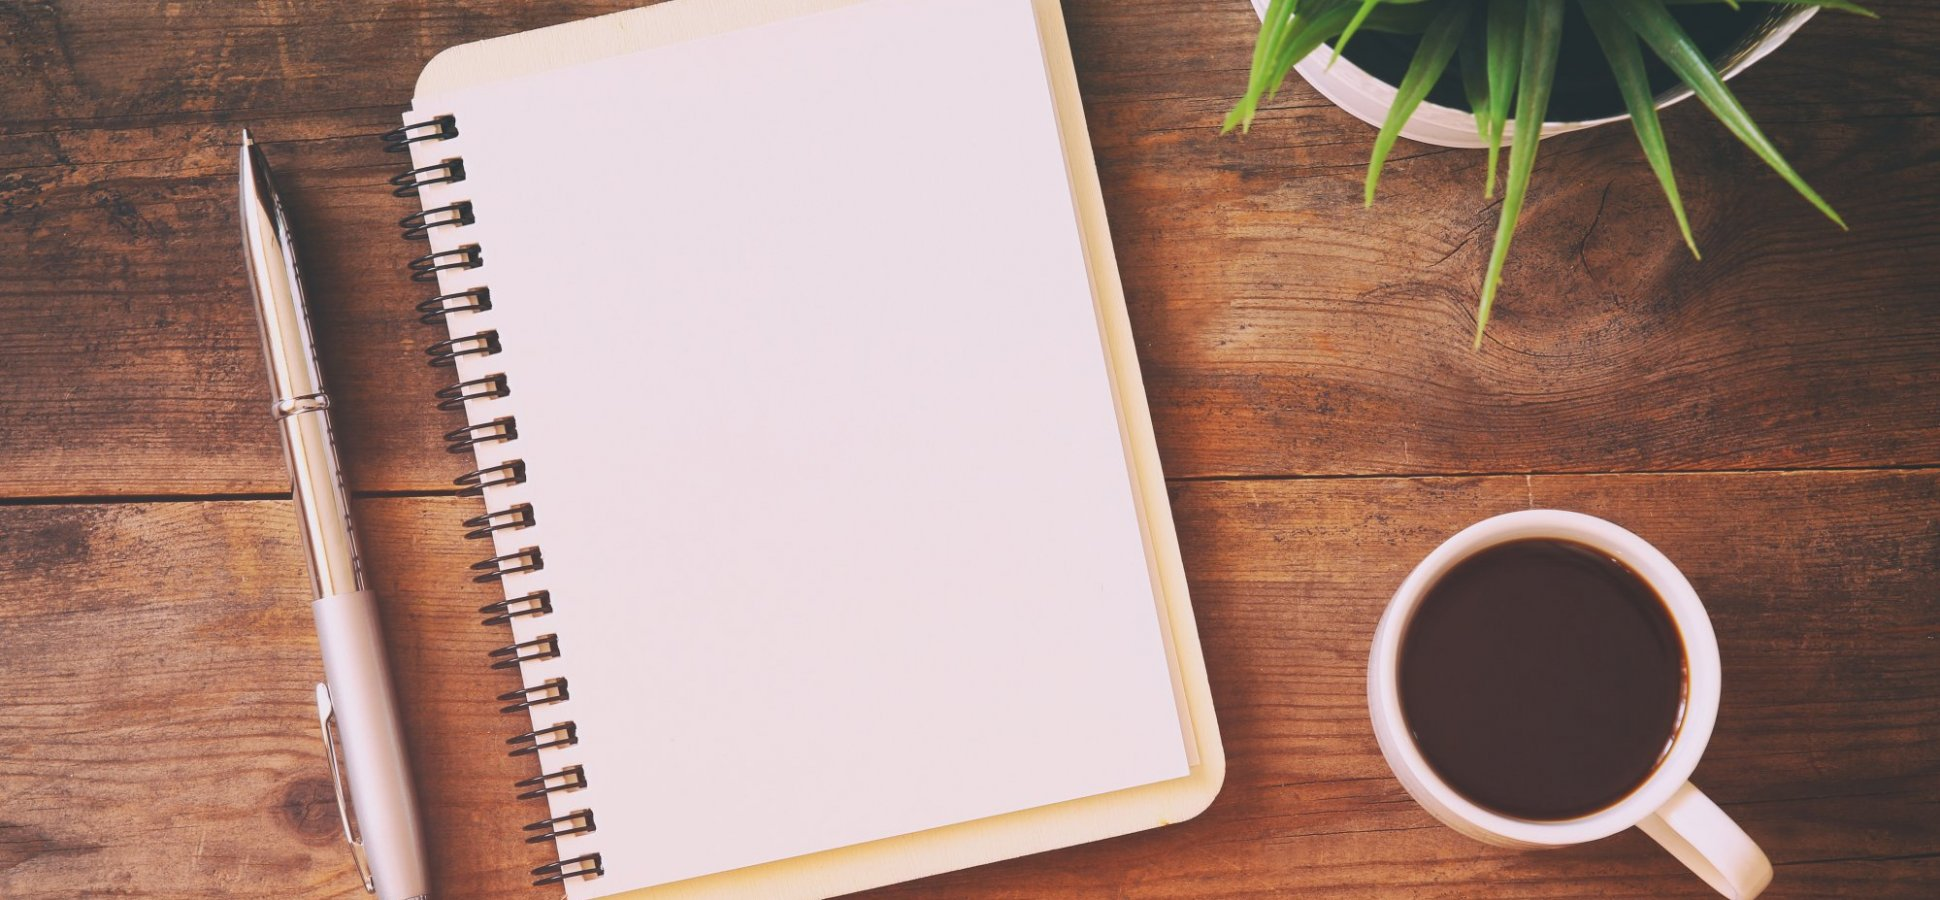 5 To-Do List Tricks That Will Completely Change How You Think About Work